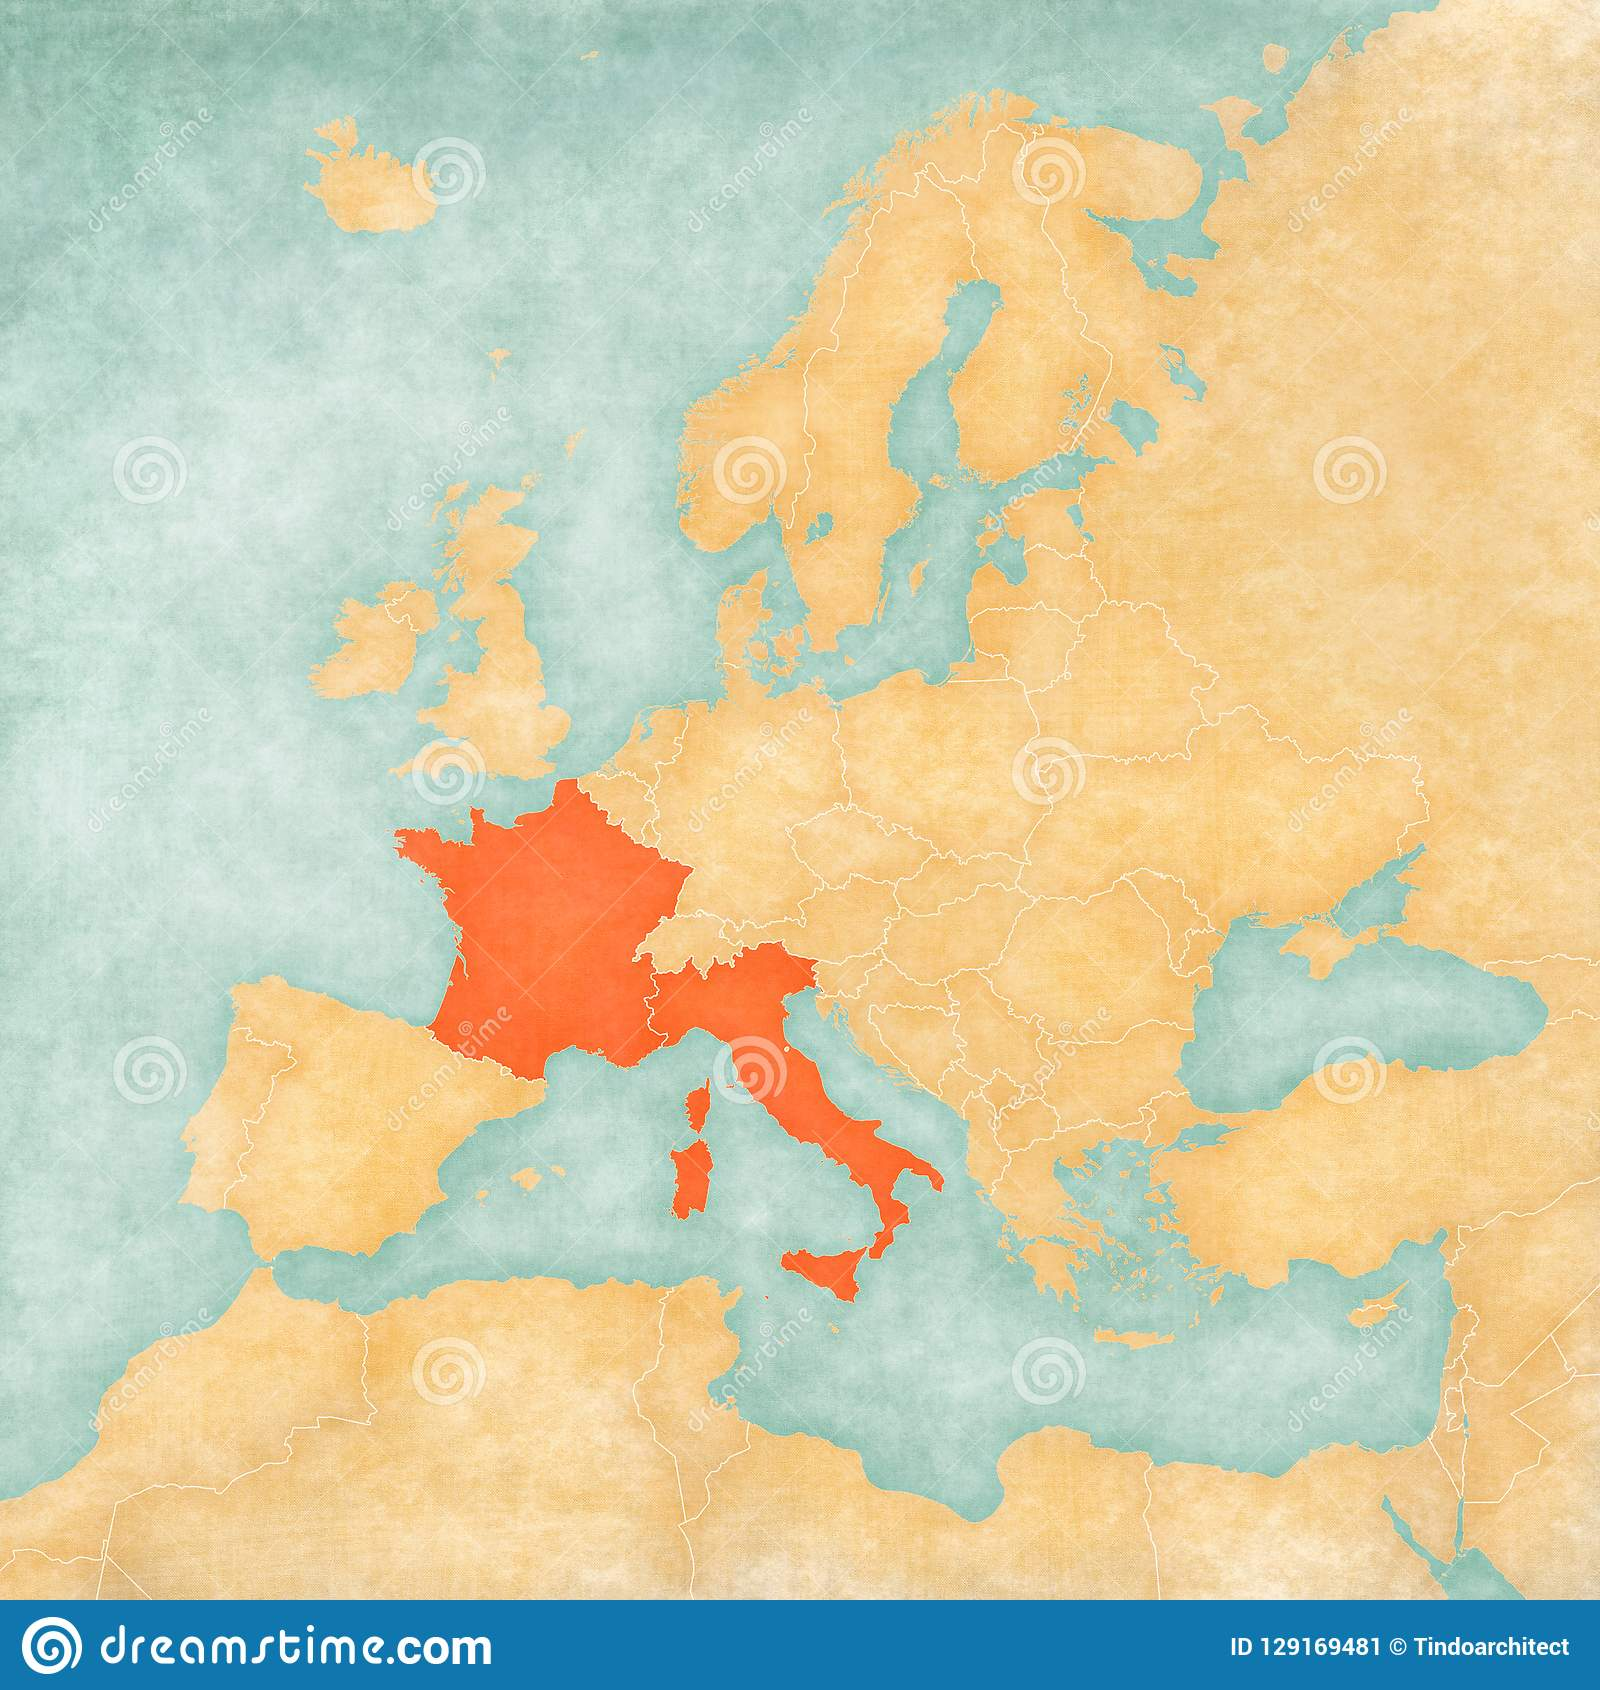 Map Of Europe France.Map Of Europe France And Italy Stock Illustration Illustration